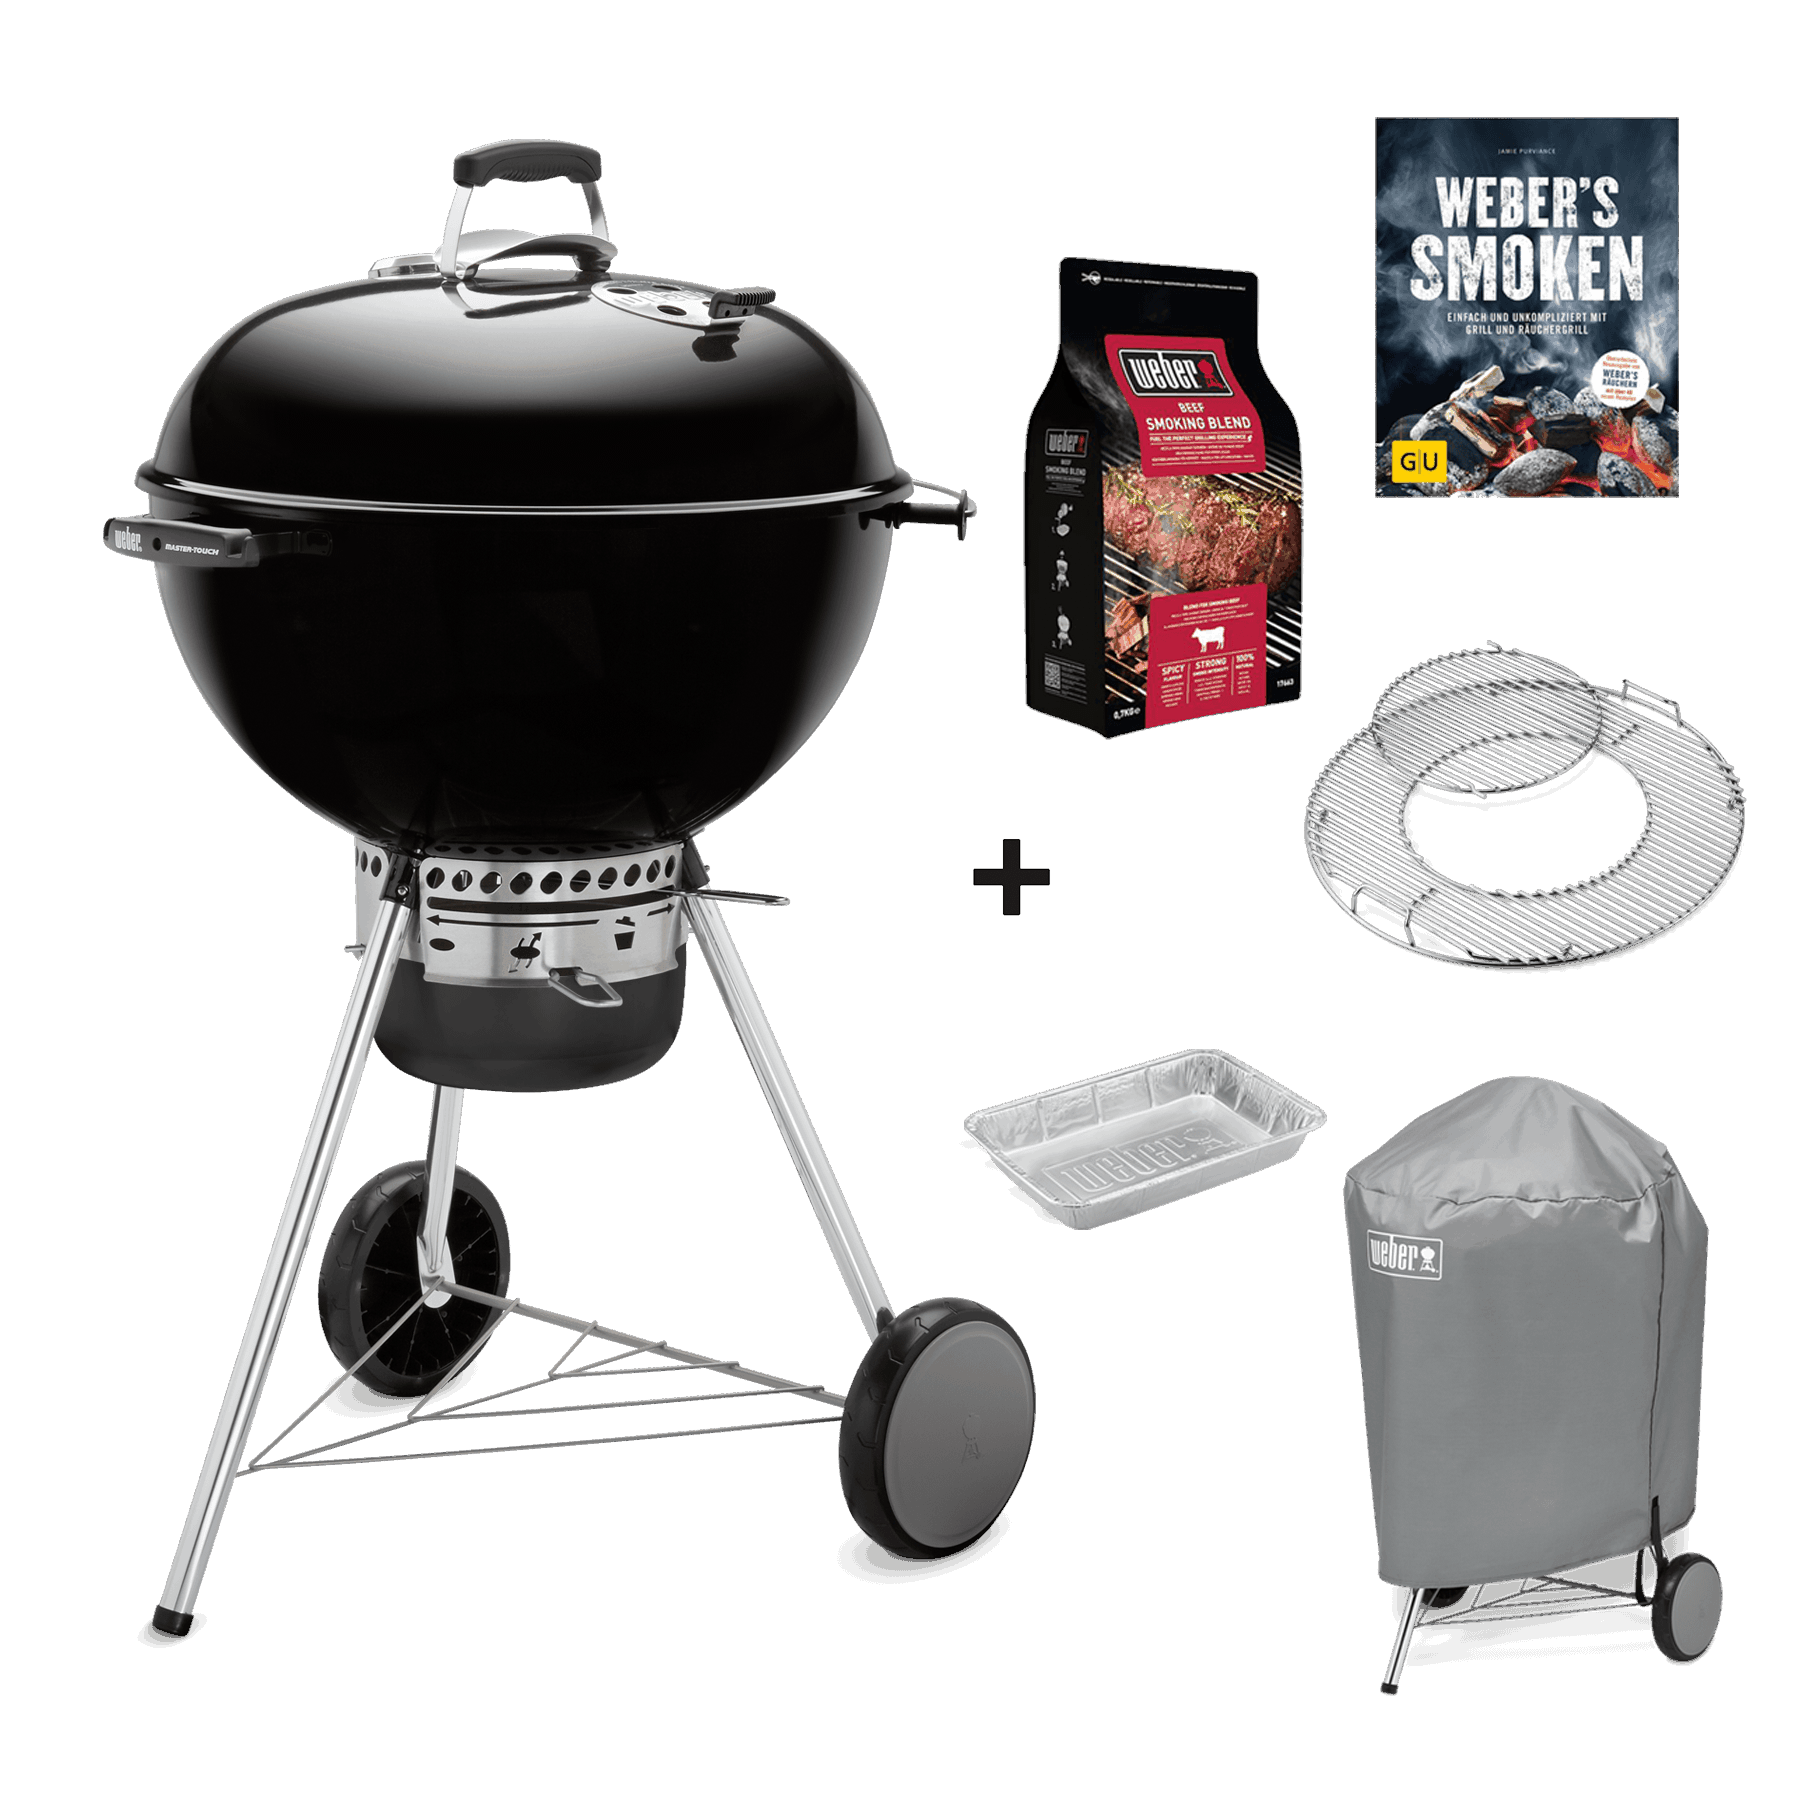 weber grill abdeckhaube interesting aks bbq grill. Black Bedroom Furniture Sets. Home Design Ideas